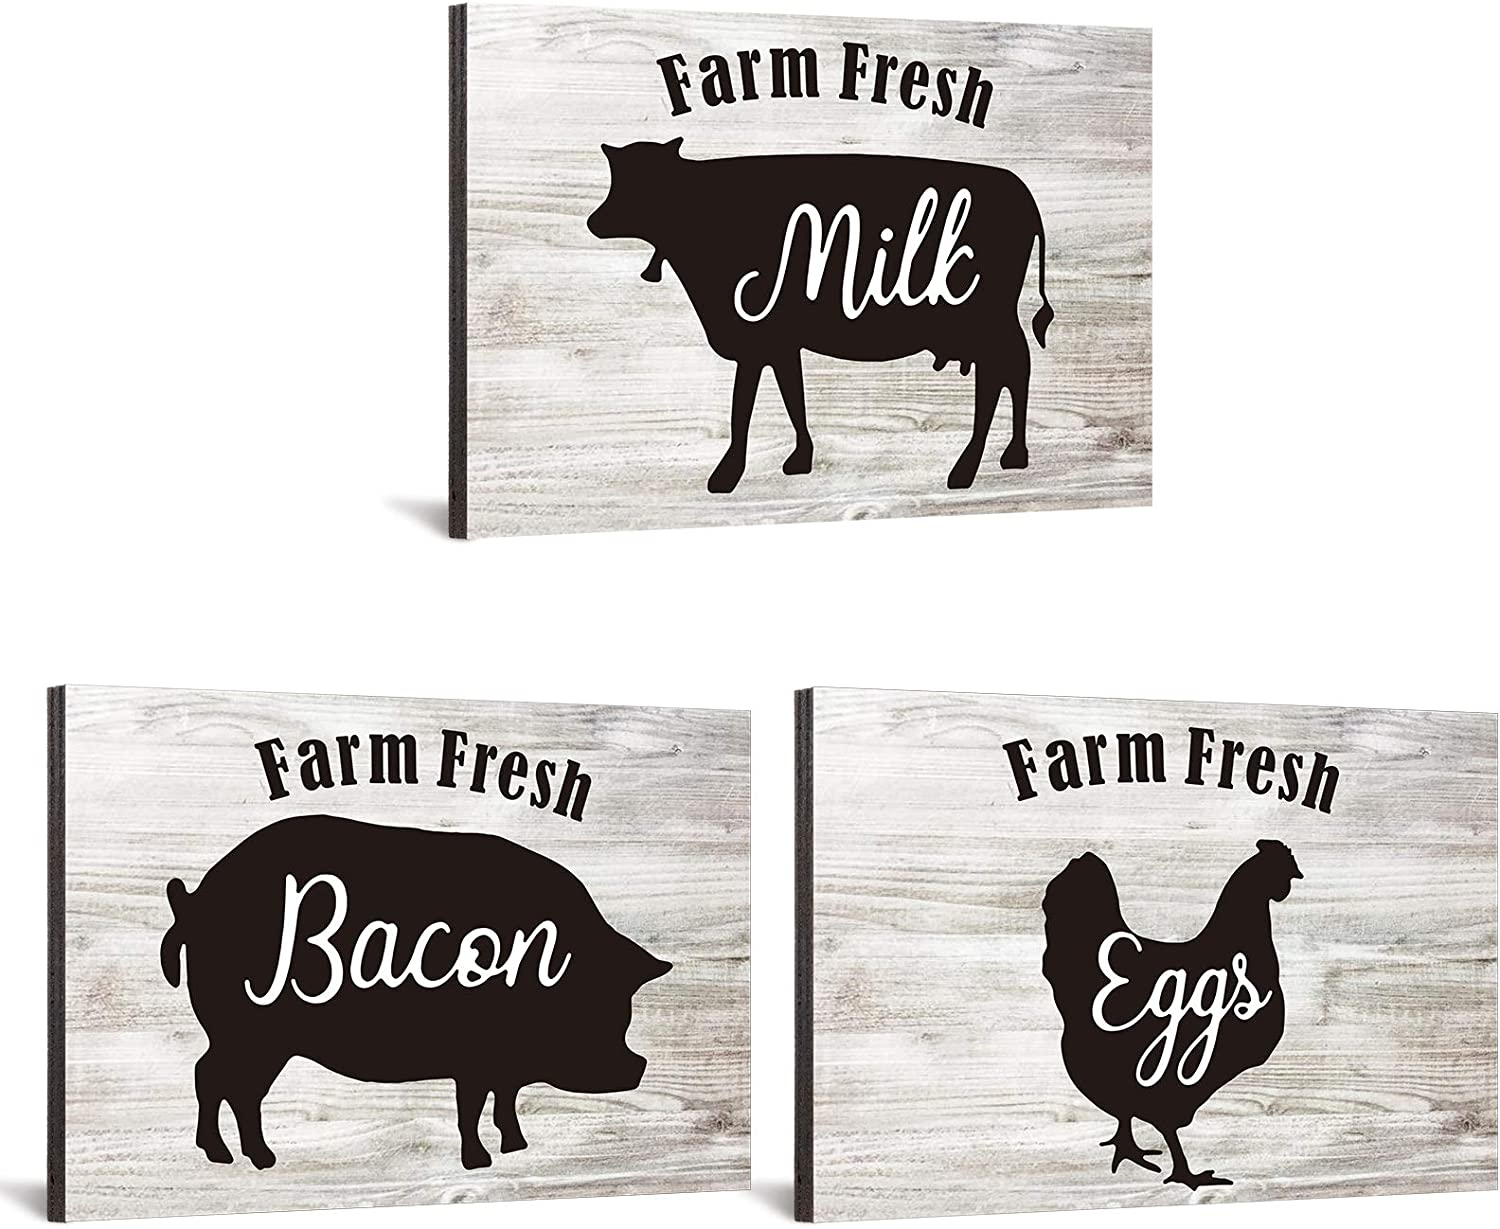 Jetec 3 Pieces Farmhouse Decor Farmhouse Kitchen Signs Cow Chicken and Pig Decors 5.5 x 3.9 Inch Rustic Wooden Signs Country Wall Decorations for Kitchen Wall Decor and Home Decor